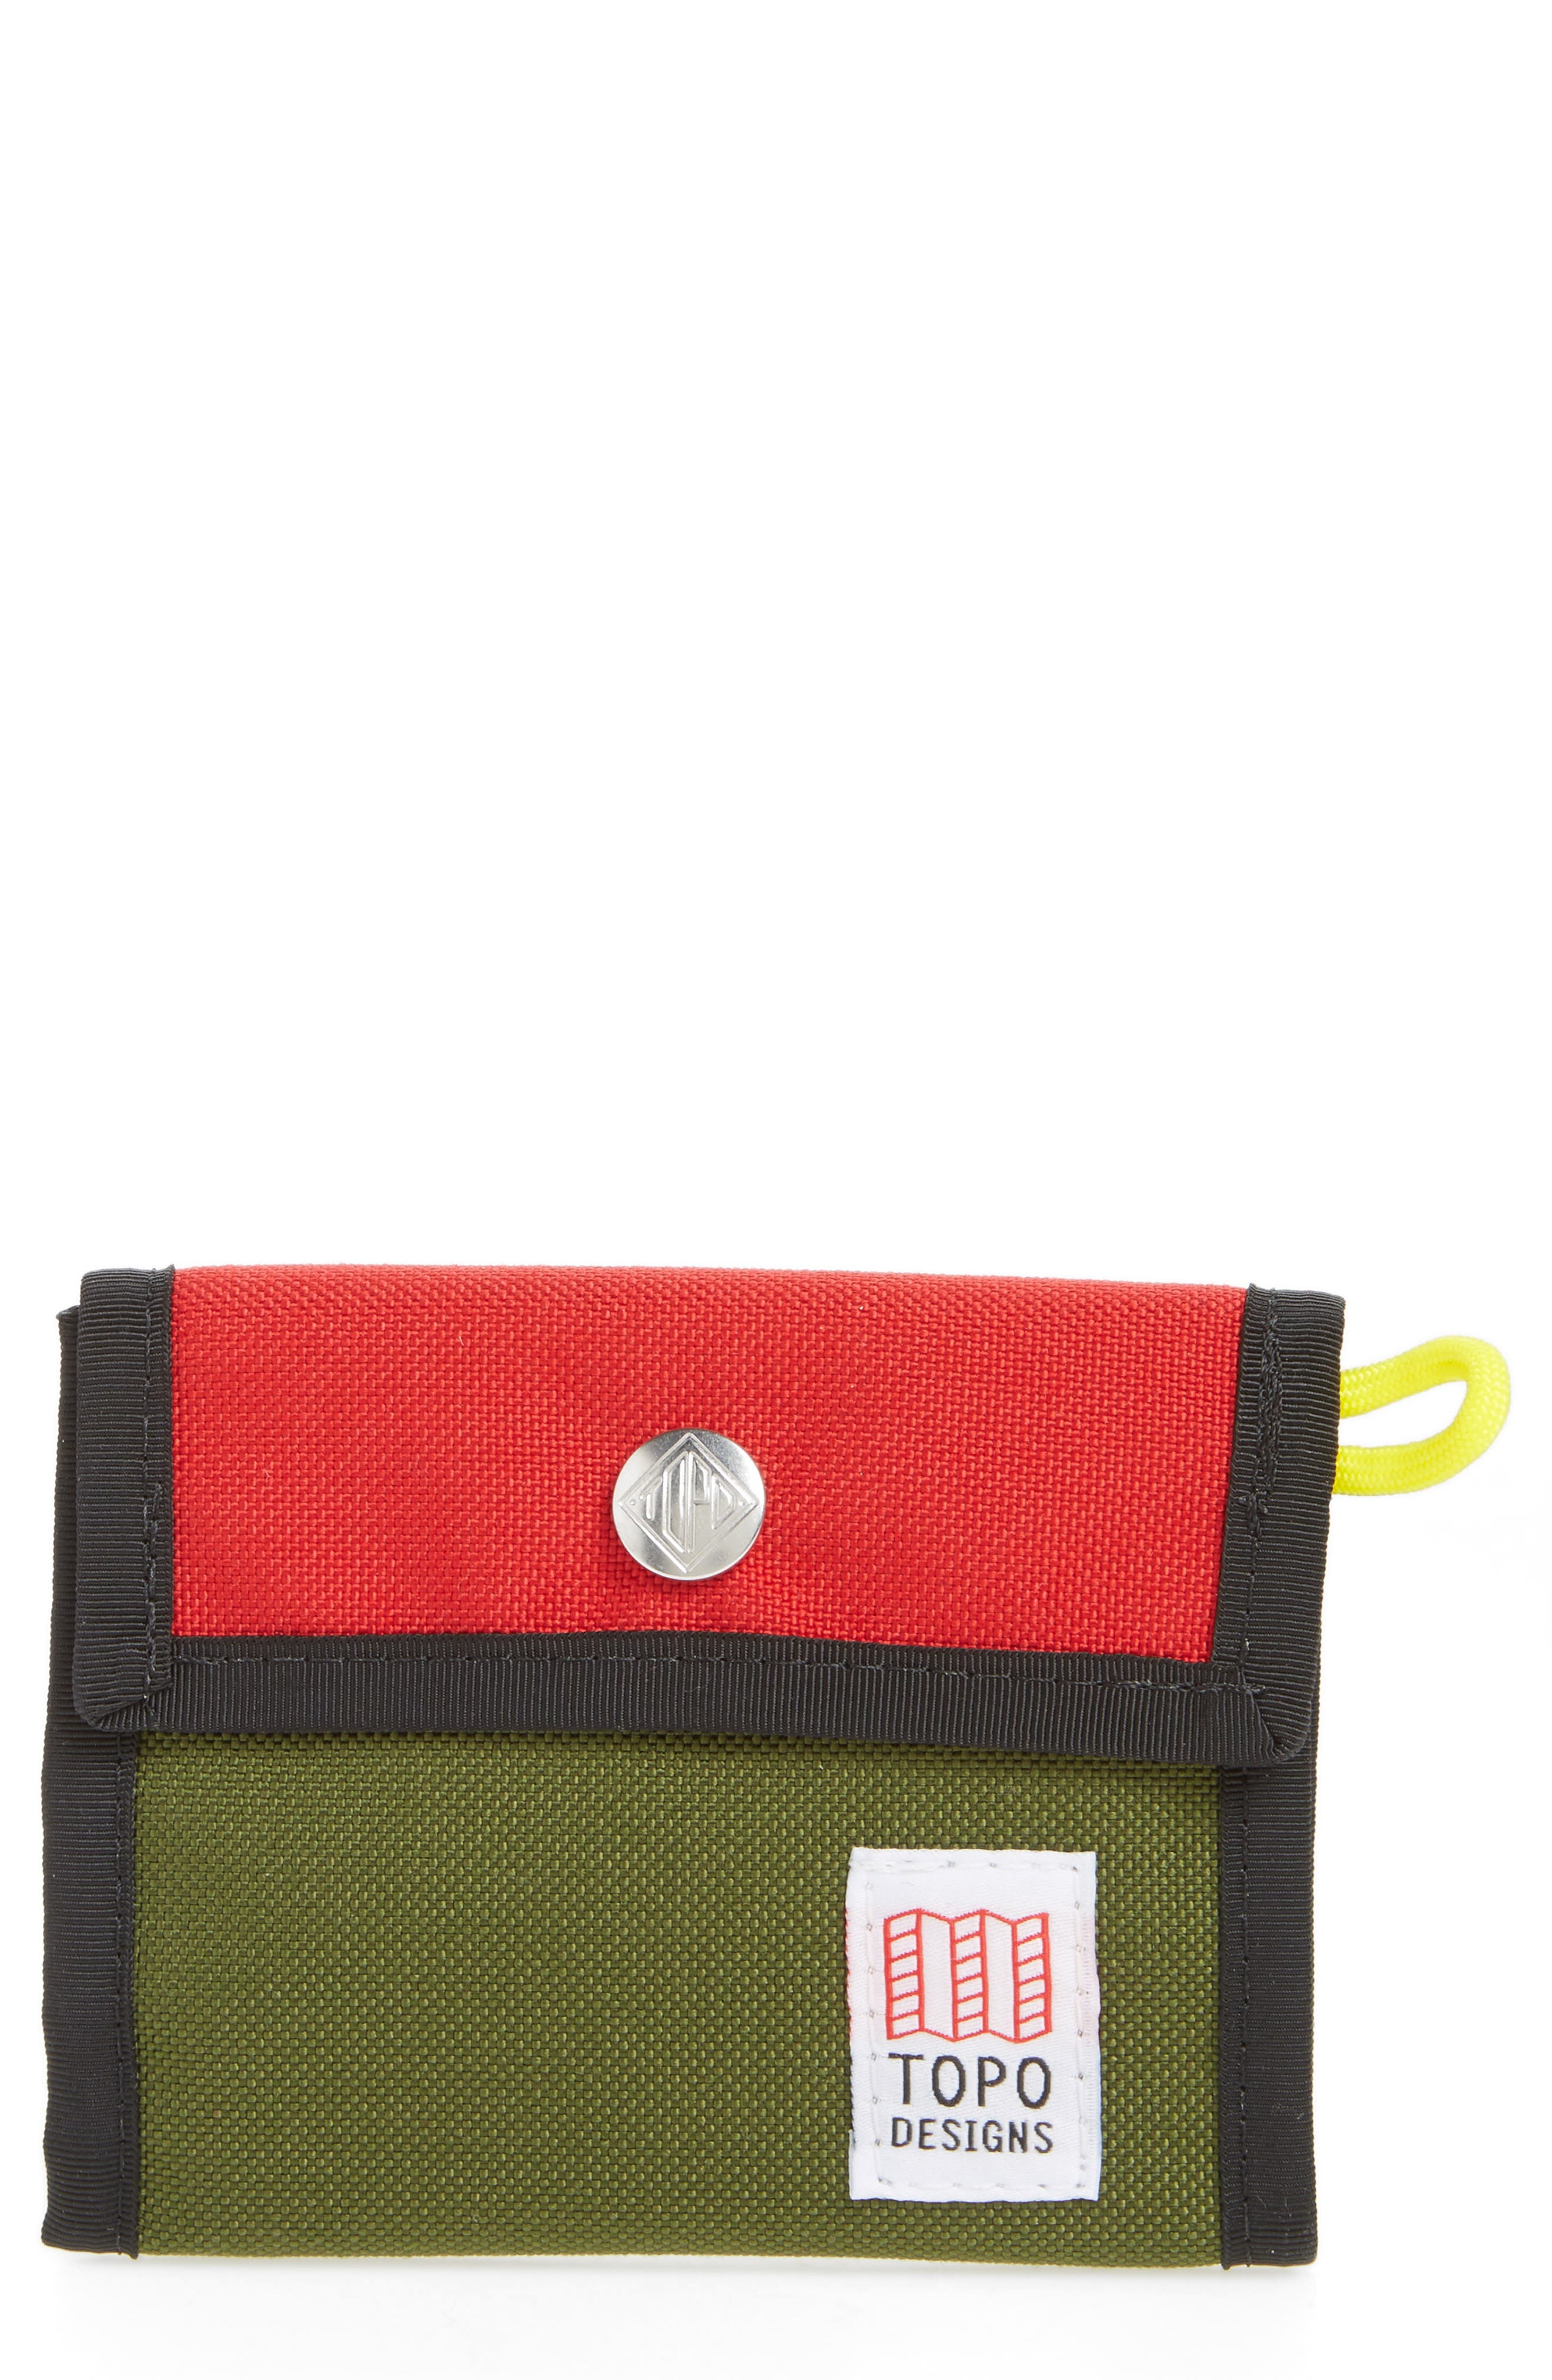 Snap Wallet,                         Main,                         color, Red/ Olive